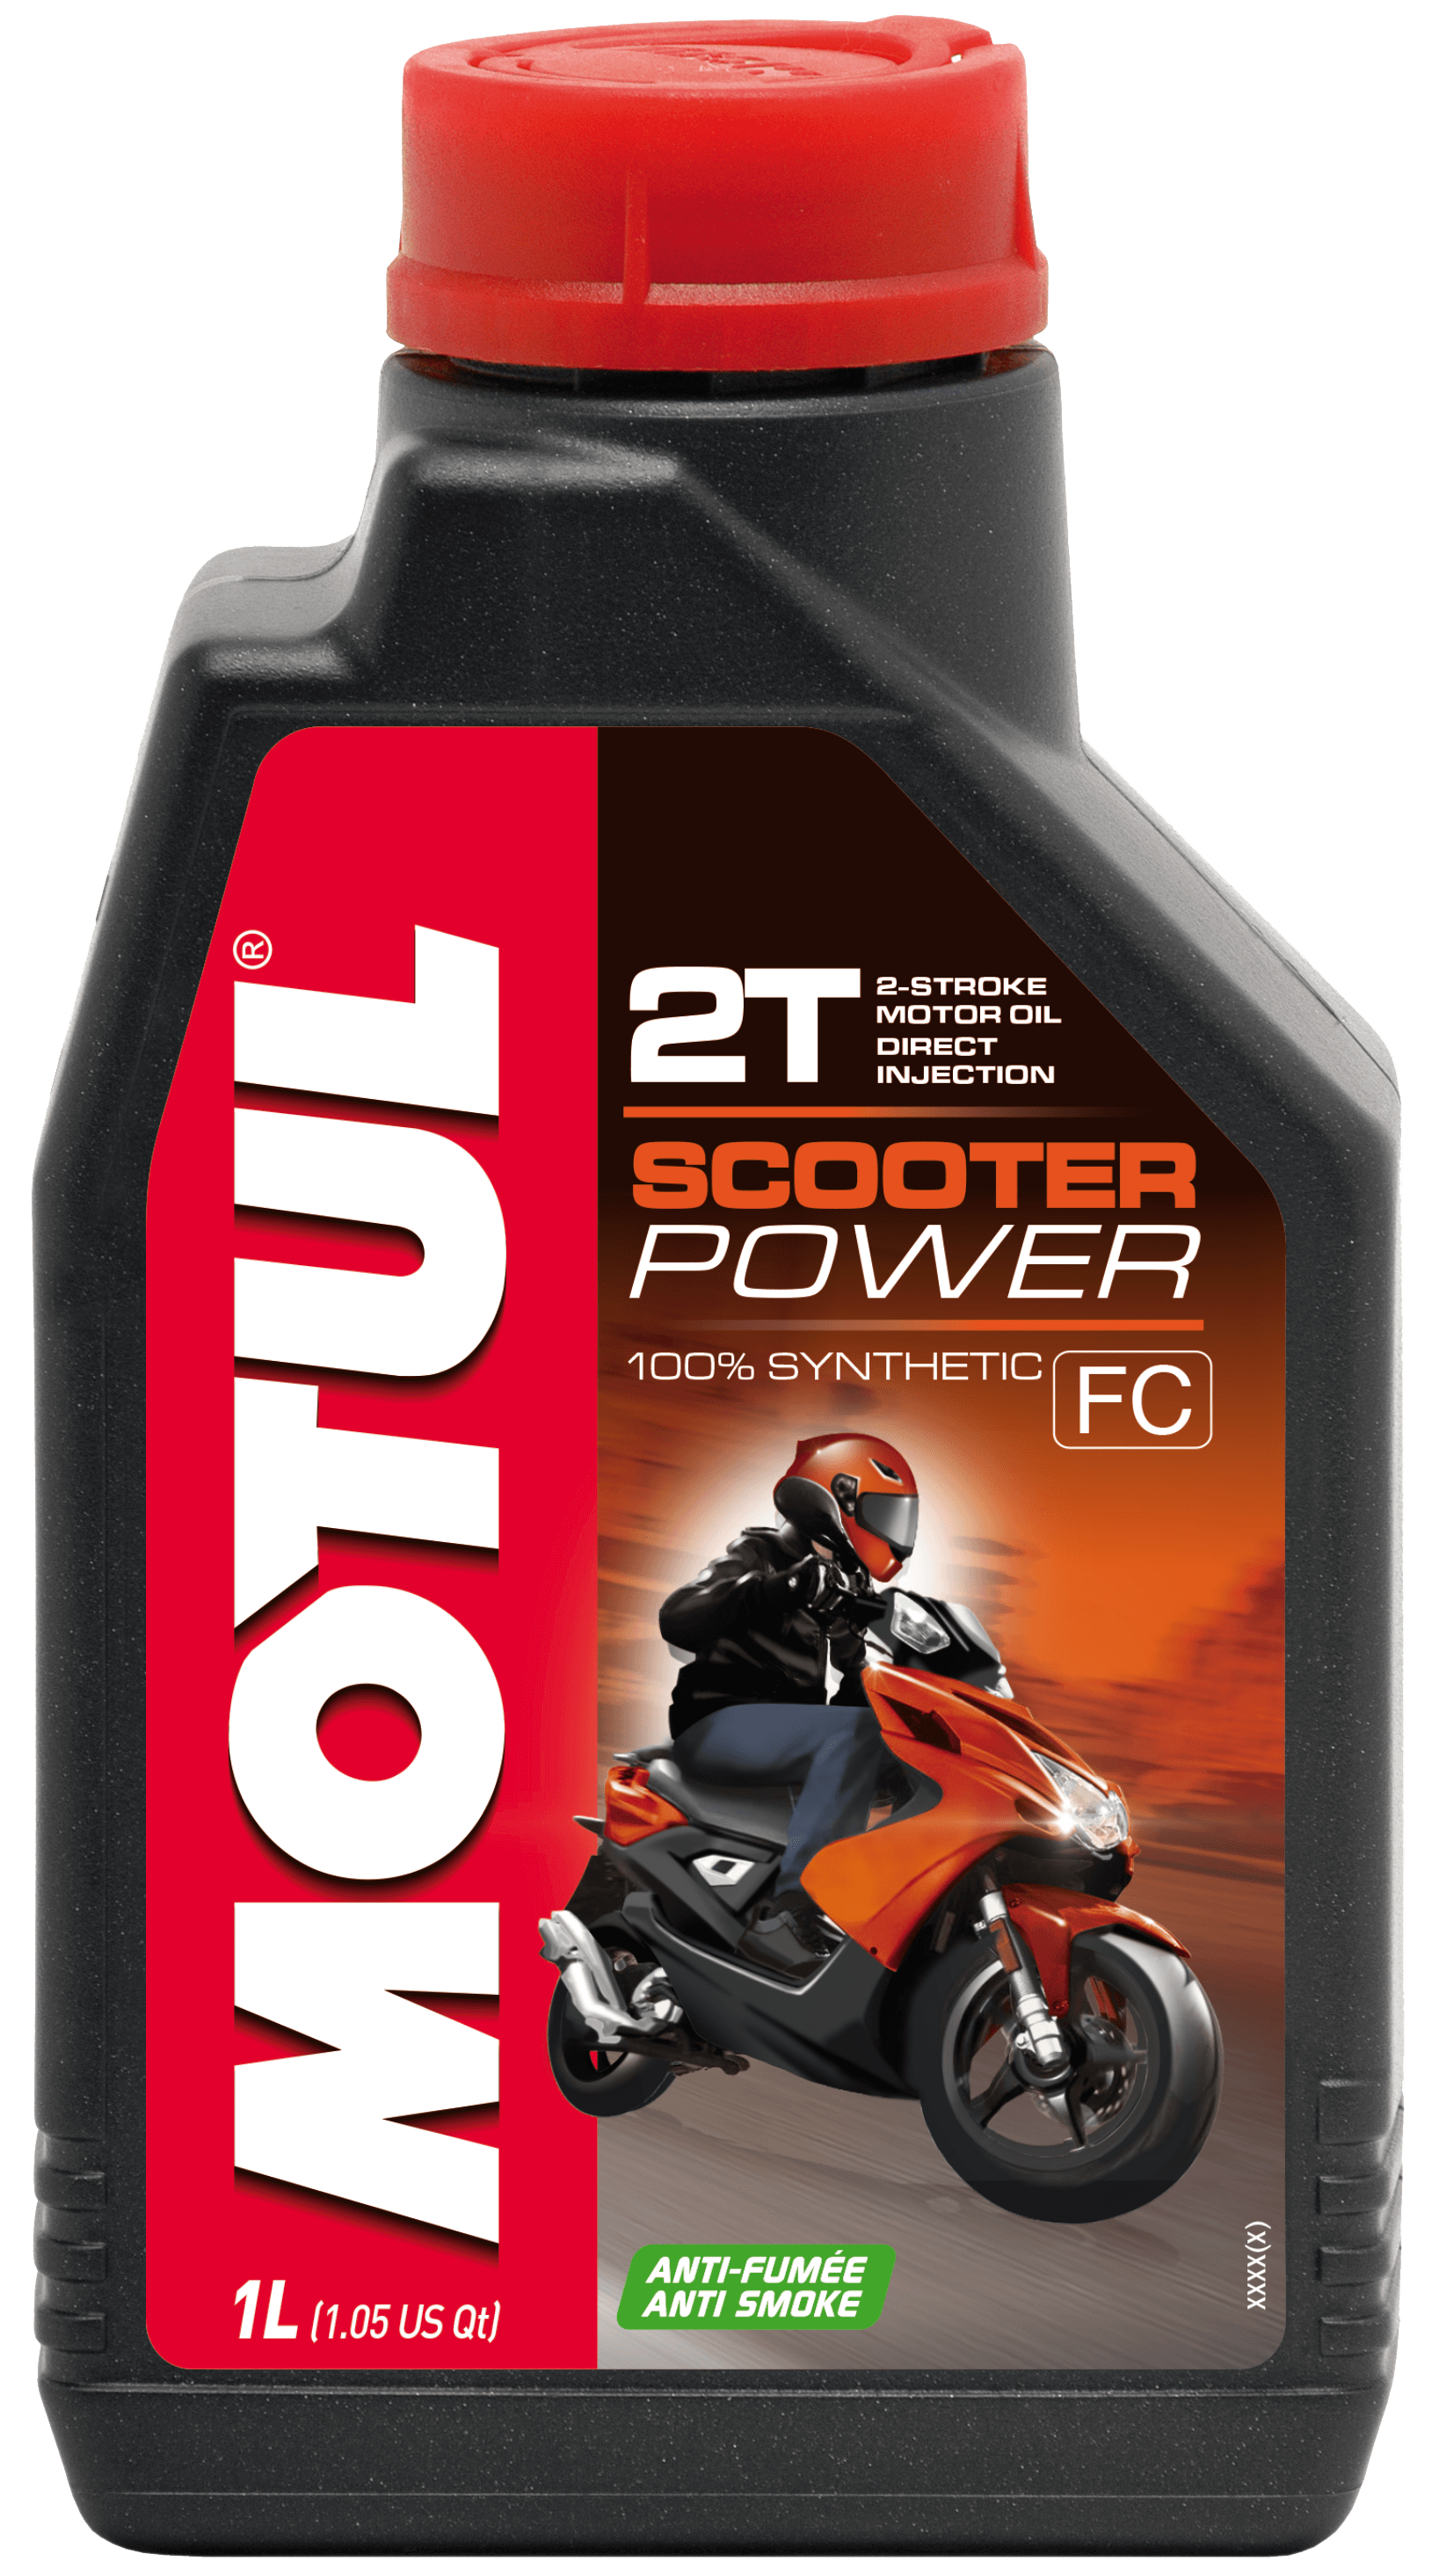 Scooter Power 2T